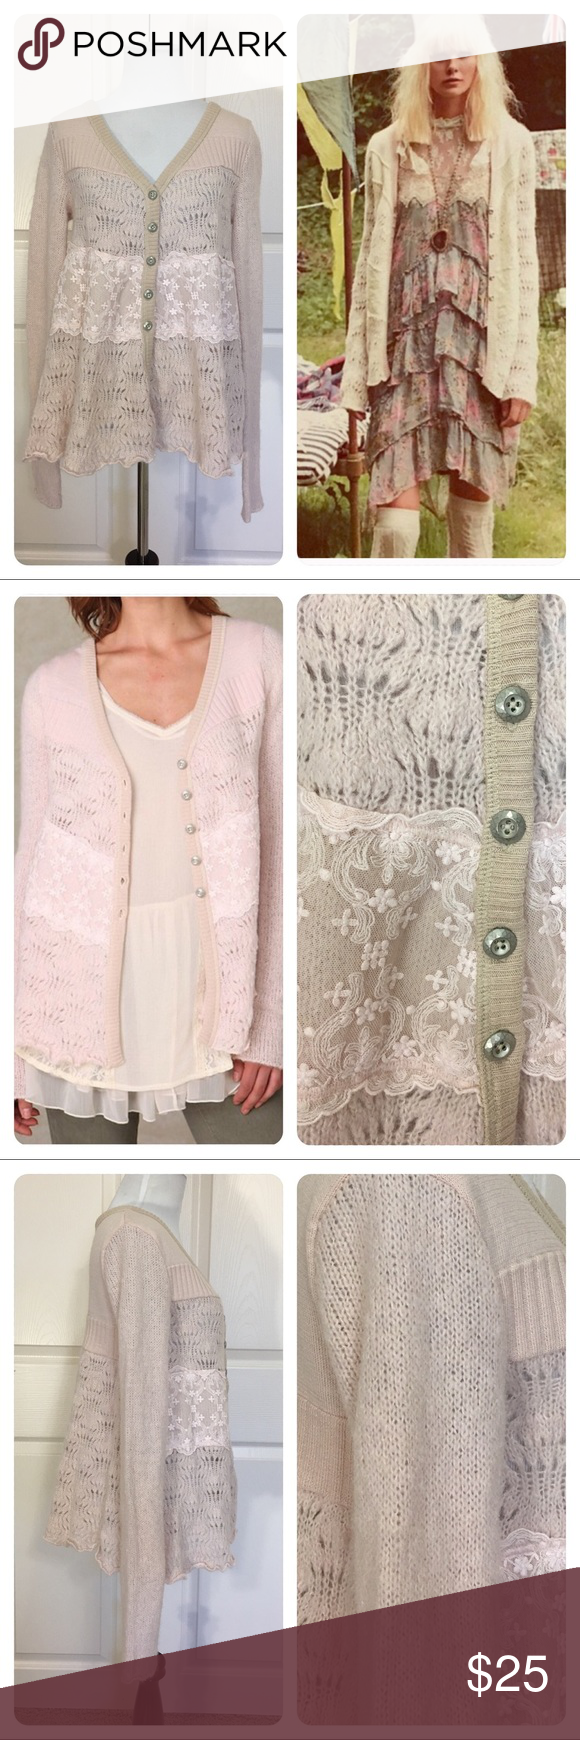 Free People Honeysuckle Years boho chic cardigan | Free people ...